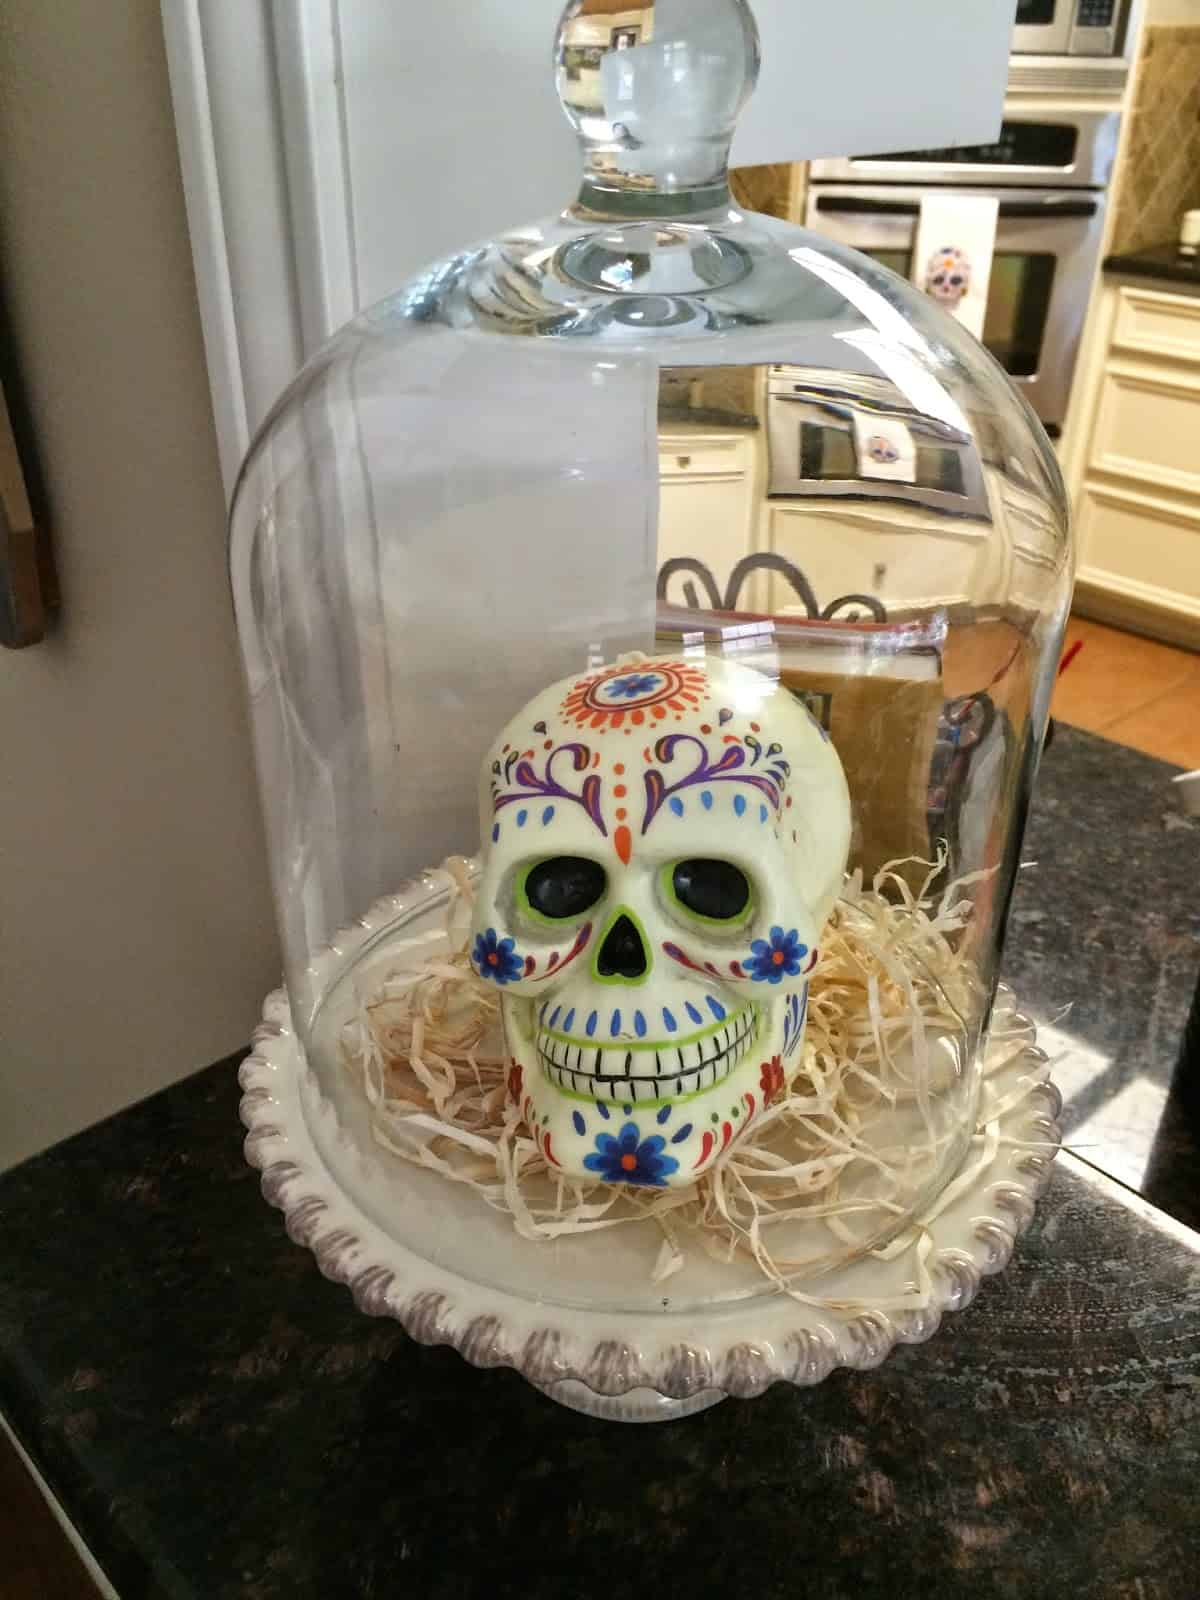 Day of the dead decor its the new halloween view in gallery day of the dead decor sugar skullg dailygadgetfo Choice Image